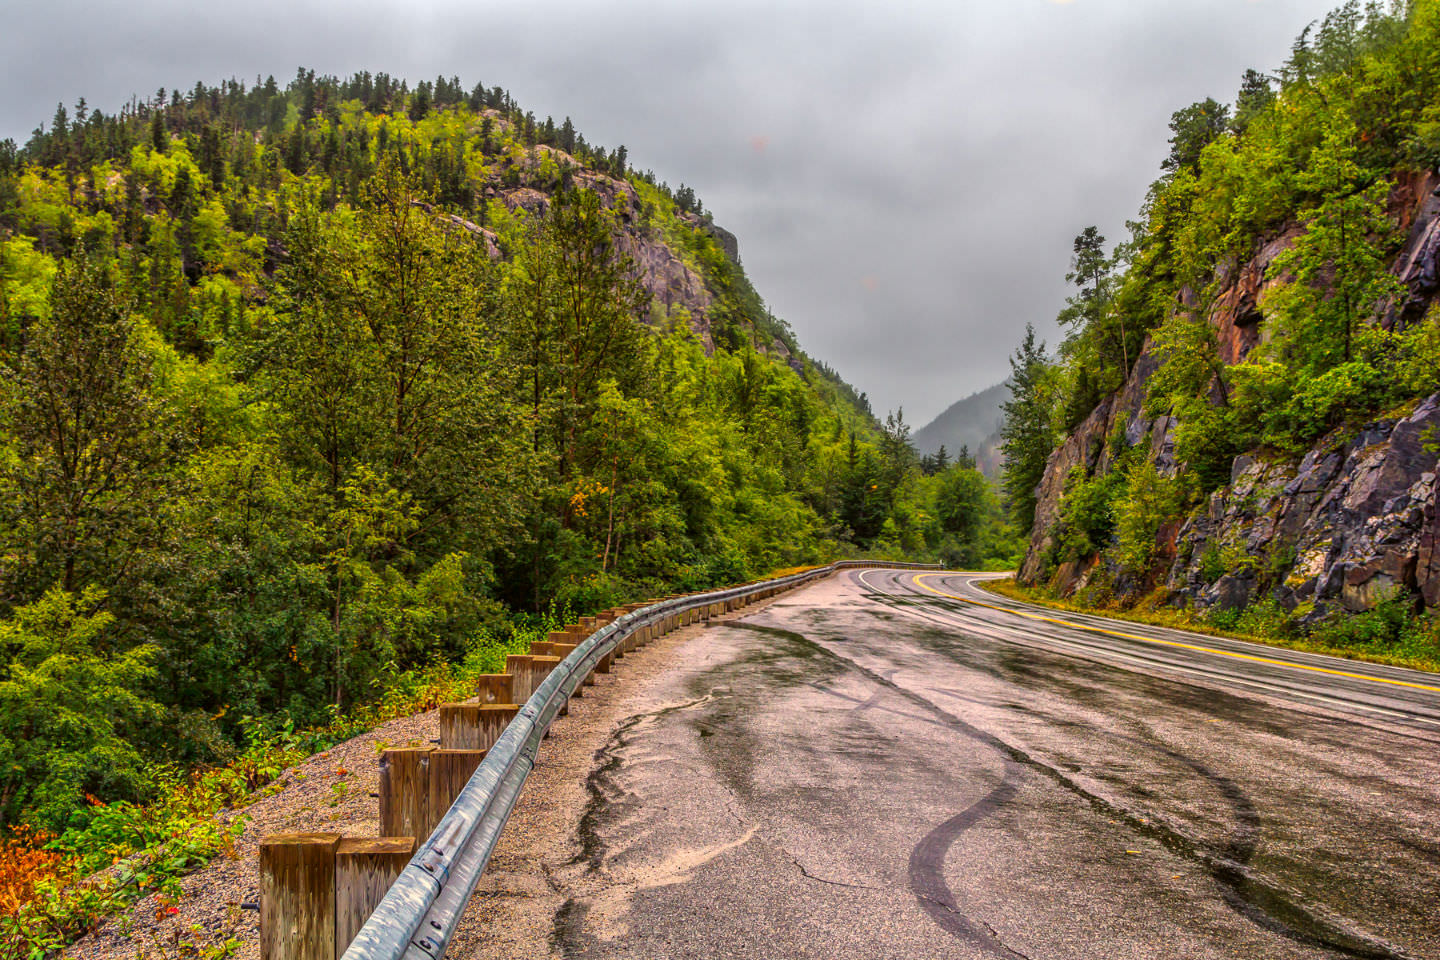 The Klondike Highway cuts between two mountaintops northeast of Skagway, Alaska near the British Columbia border. Incidentally, if you're ever planning on visiting Skagway and want to rent a car and drive into the Yukon, I can't recommend Murray's Guide enough.